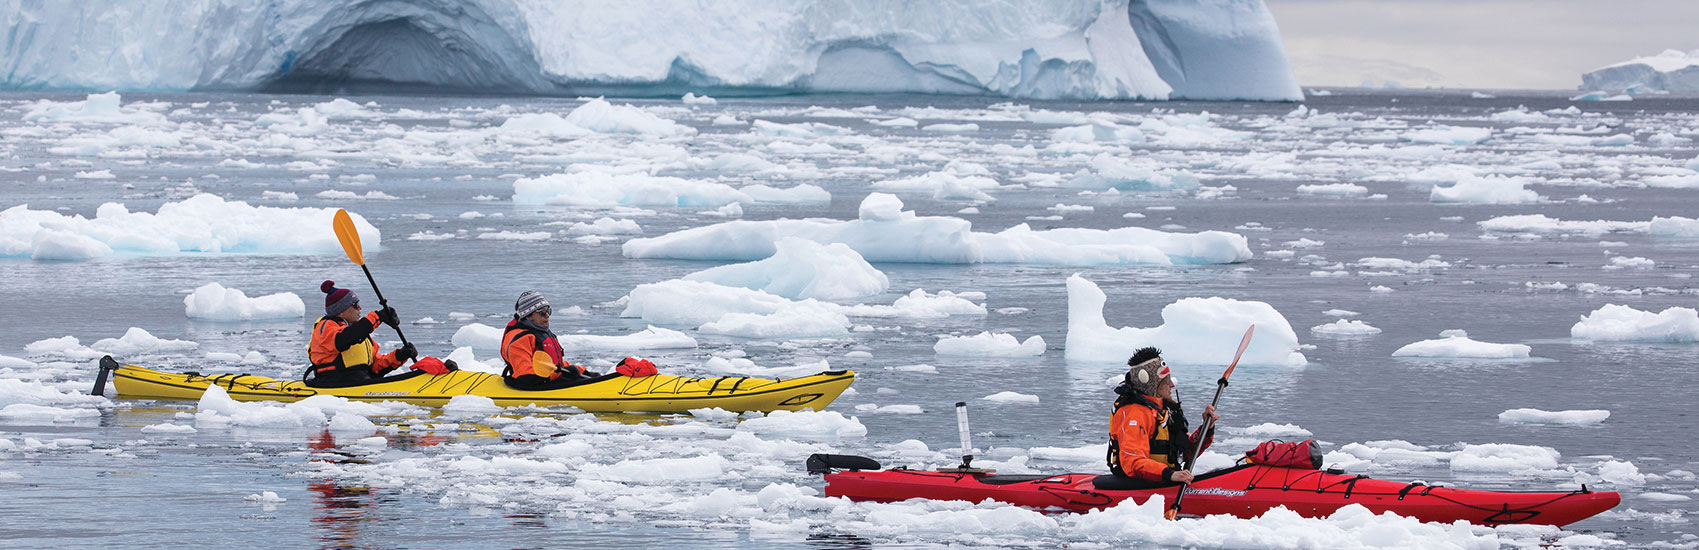 All-Inclusive Antarctica Experience with Silversea Cruises 2